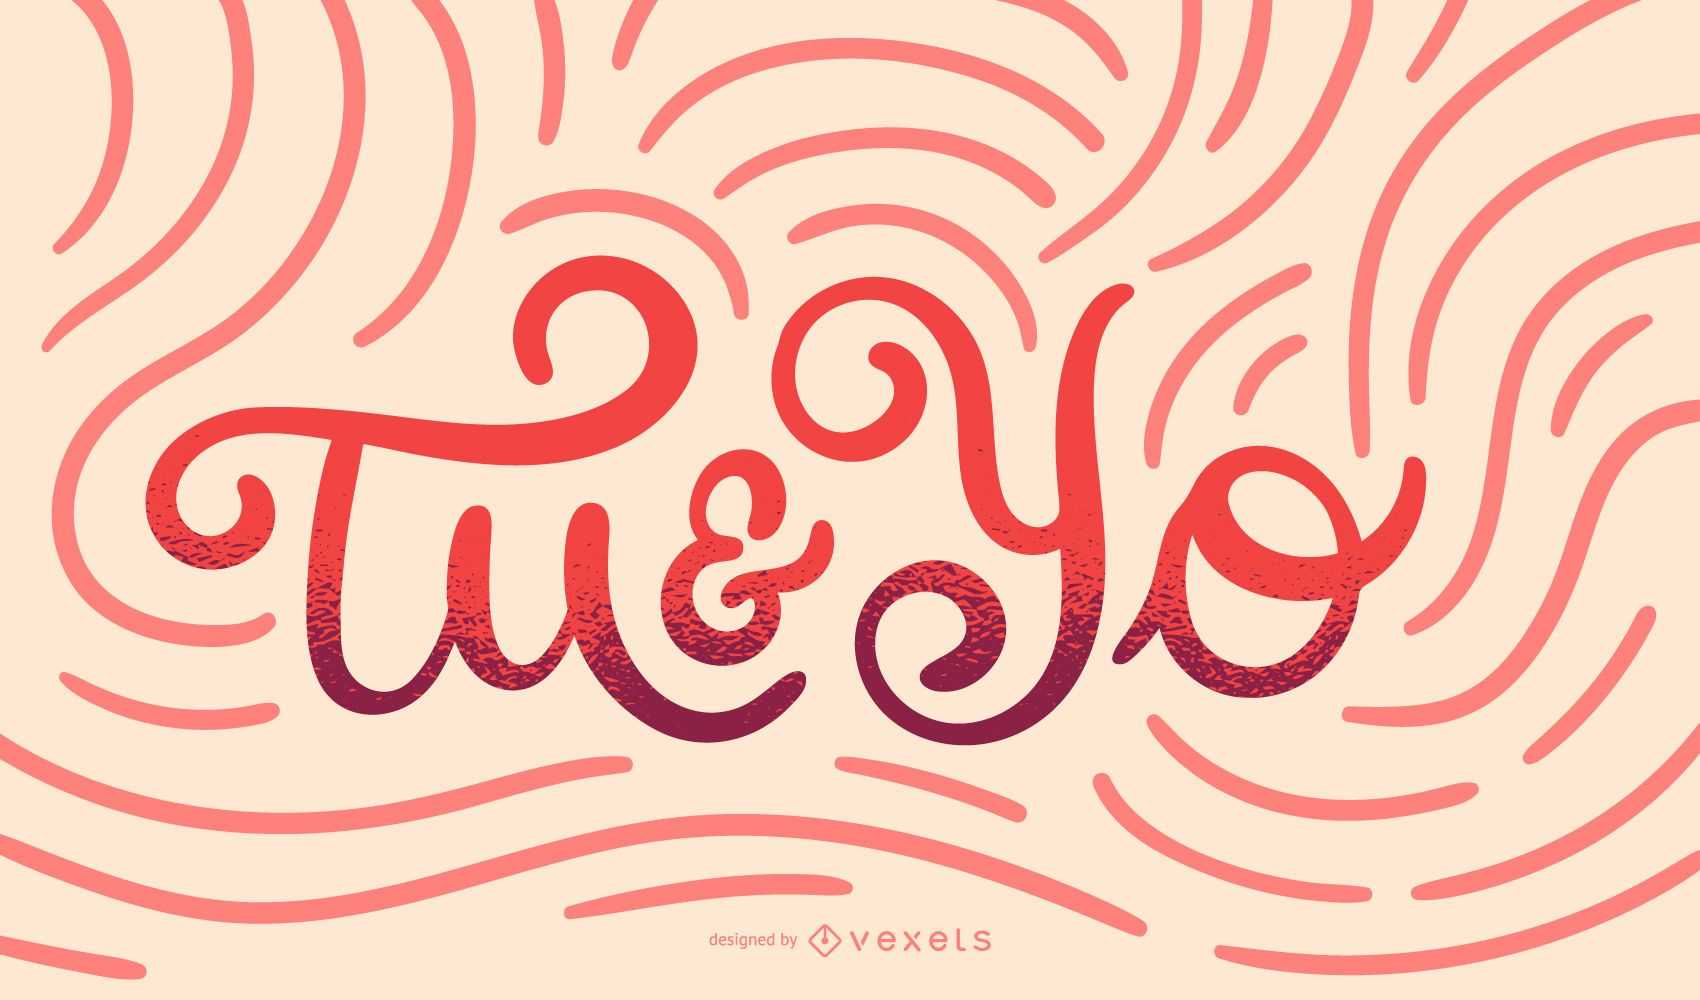 You and Me Spanish Quote Design